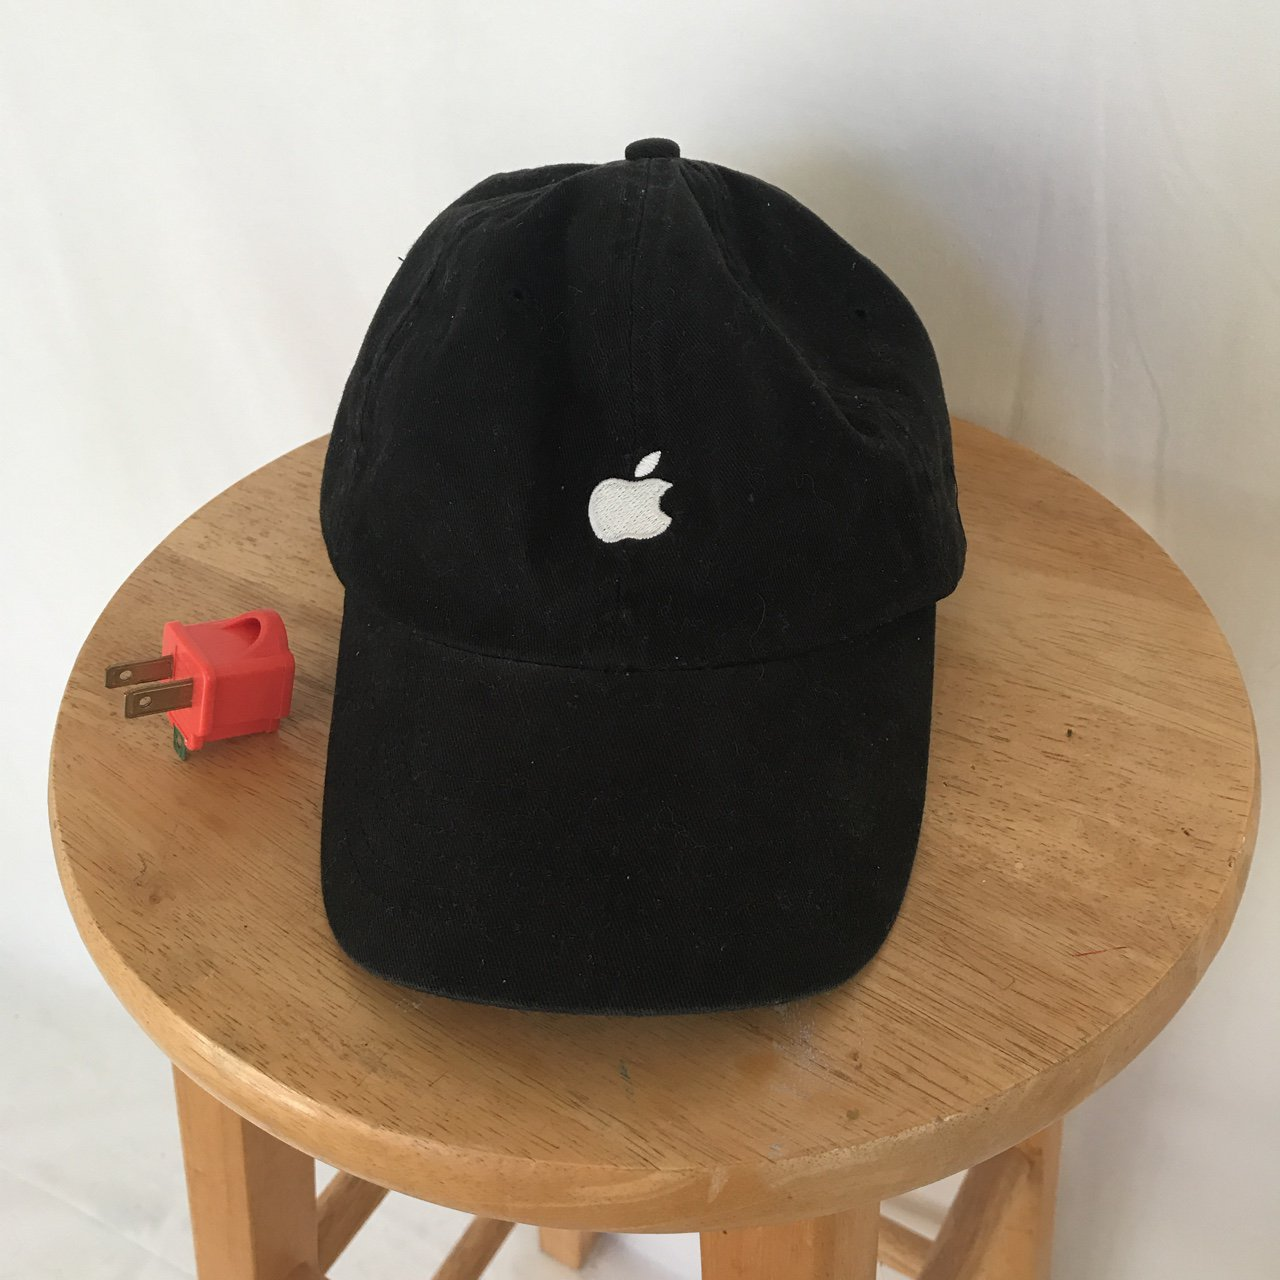 Iconic Y2k black apple strap back dad hat. If your daddy is - Depop d30a78a47f0